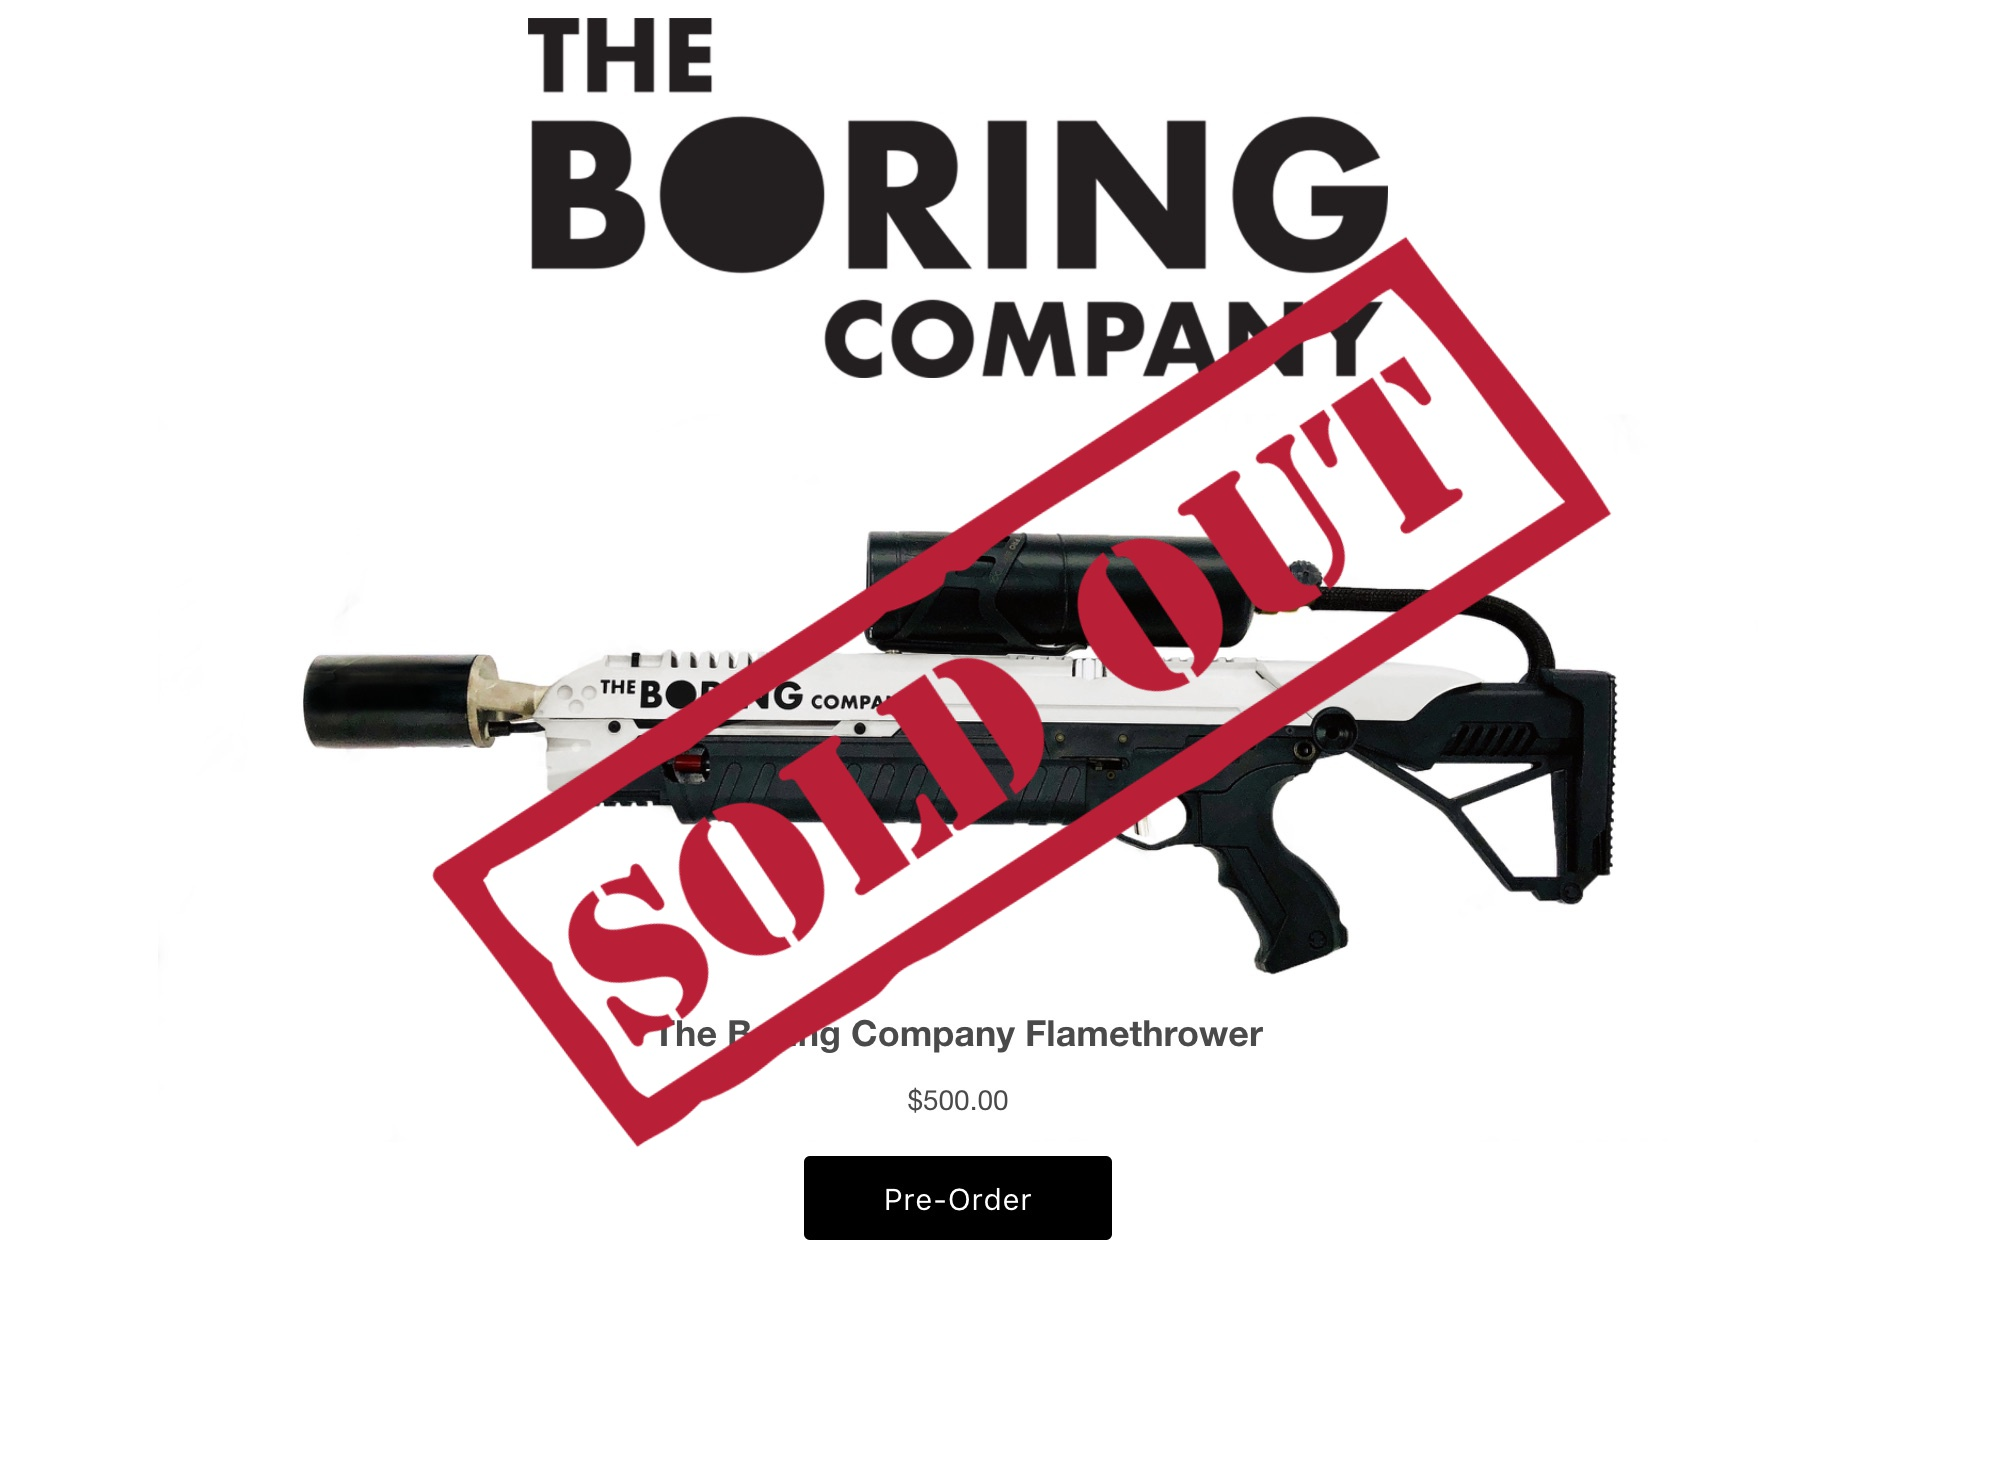 Elon-Musk-Boring_Company_Flamethrower-sold-out-2